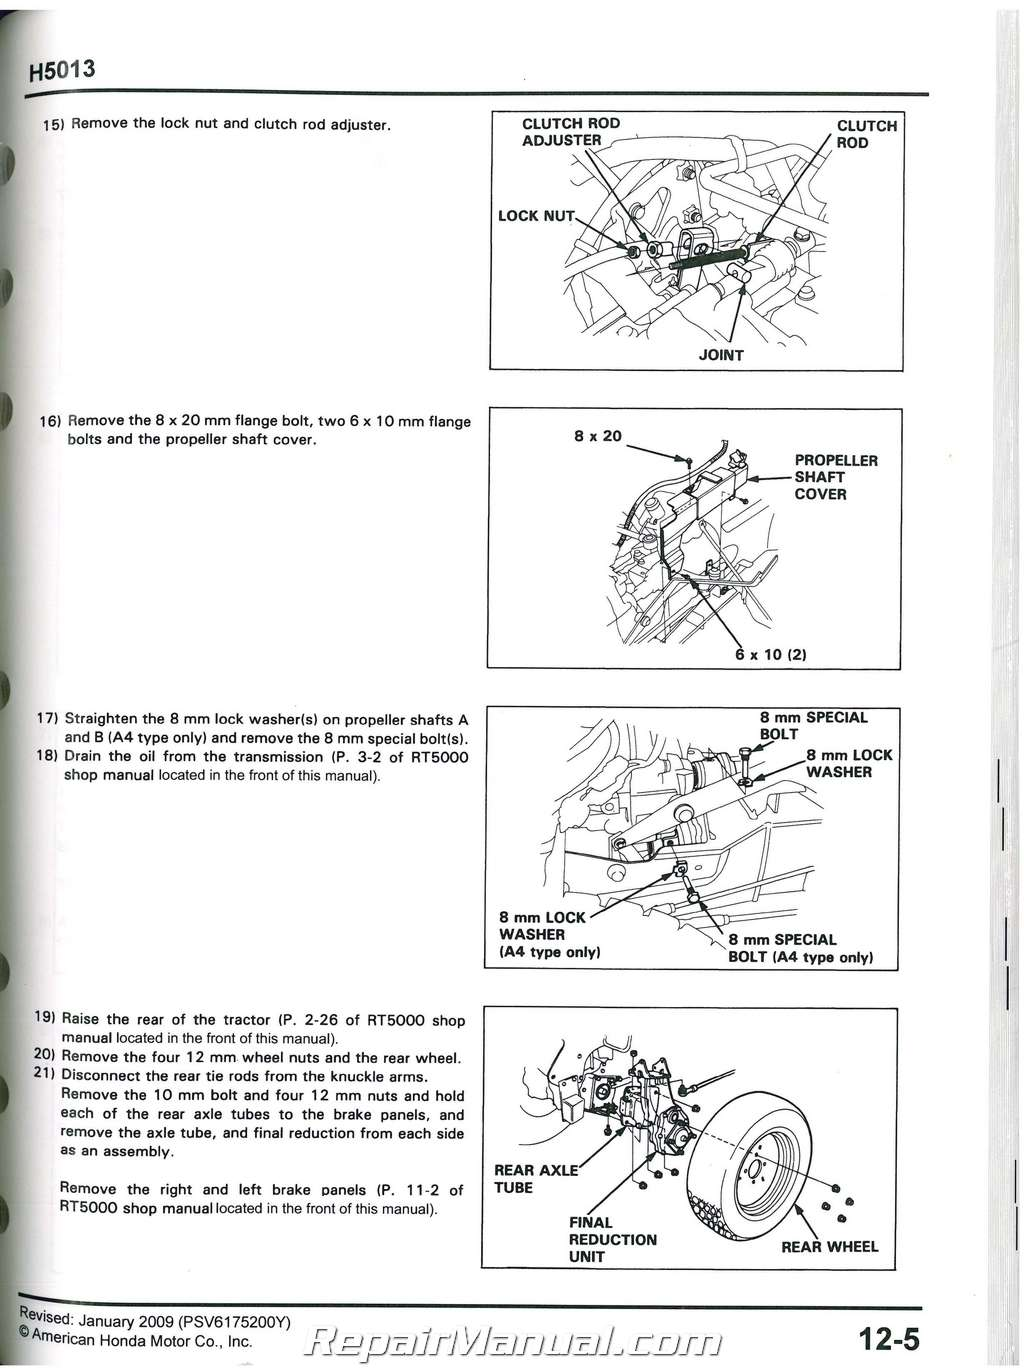 Honda H5013 Rt5000 Lawn Tractor Shop Manual   6175200e3